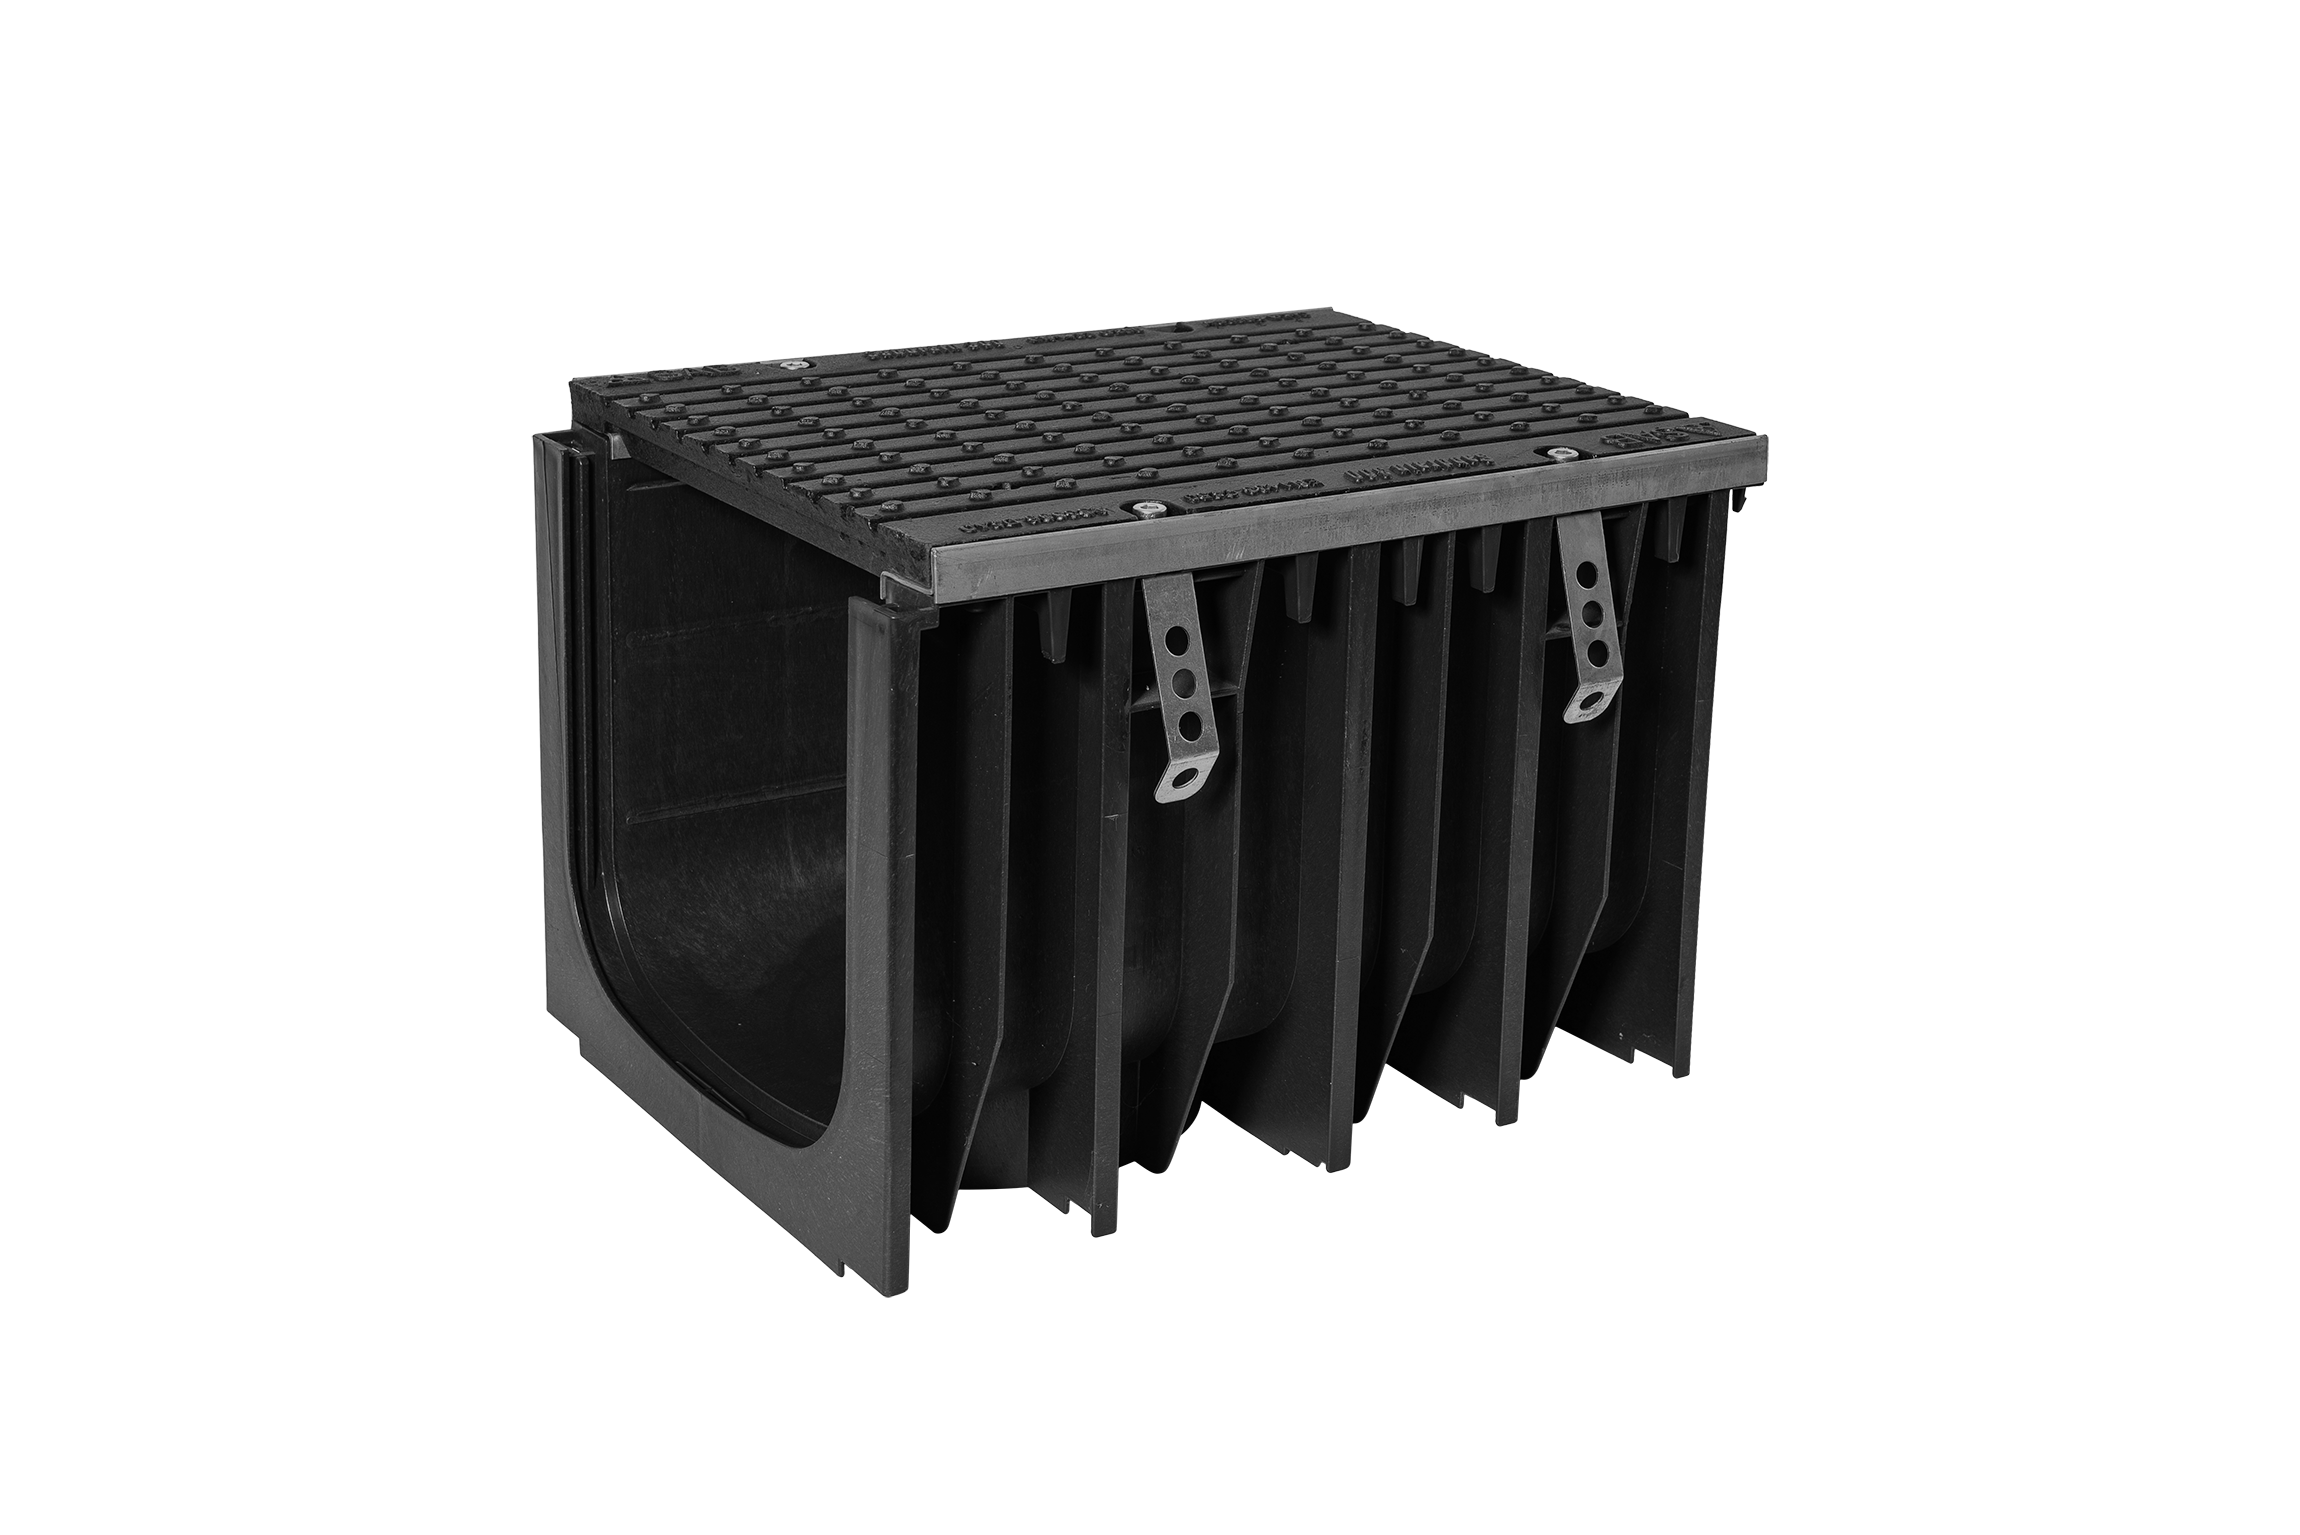 SABDrain 707 Grande is the largest of the channel and grate unit available for the ever increasing needs of the drainage market. While still being able to meet what is necessary to comply with the design requirements of class C - G ratings, this channel is able to deliver the performance required of it. Each grate is equipped with a 4 point security fixing system to secure it from unauthorized access, and keep it rattle free from vehicular movements, as well as steel side edging to give higher resistance to heavy loads.